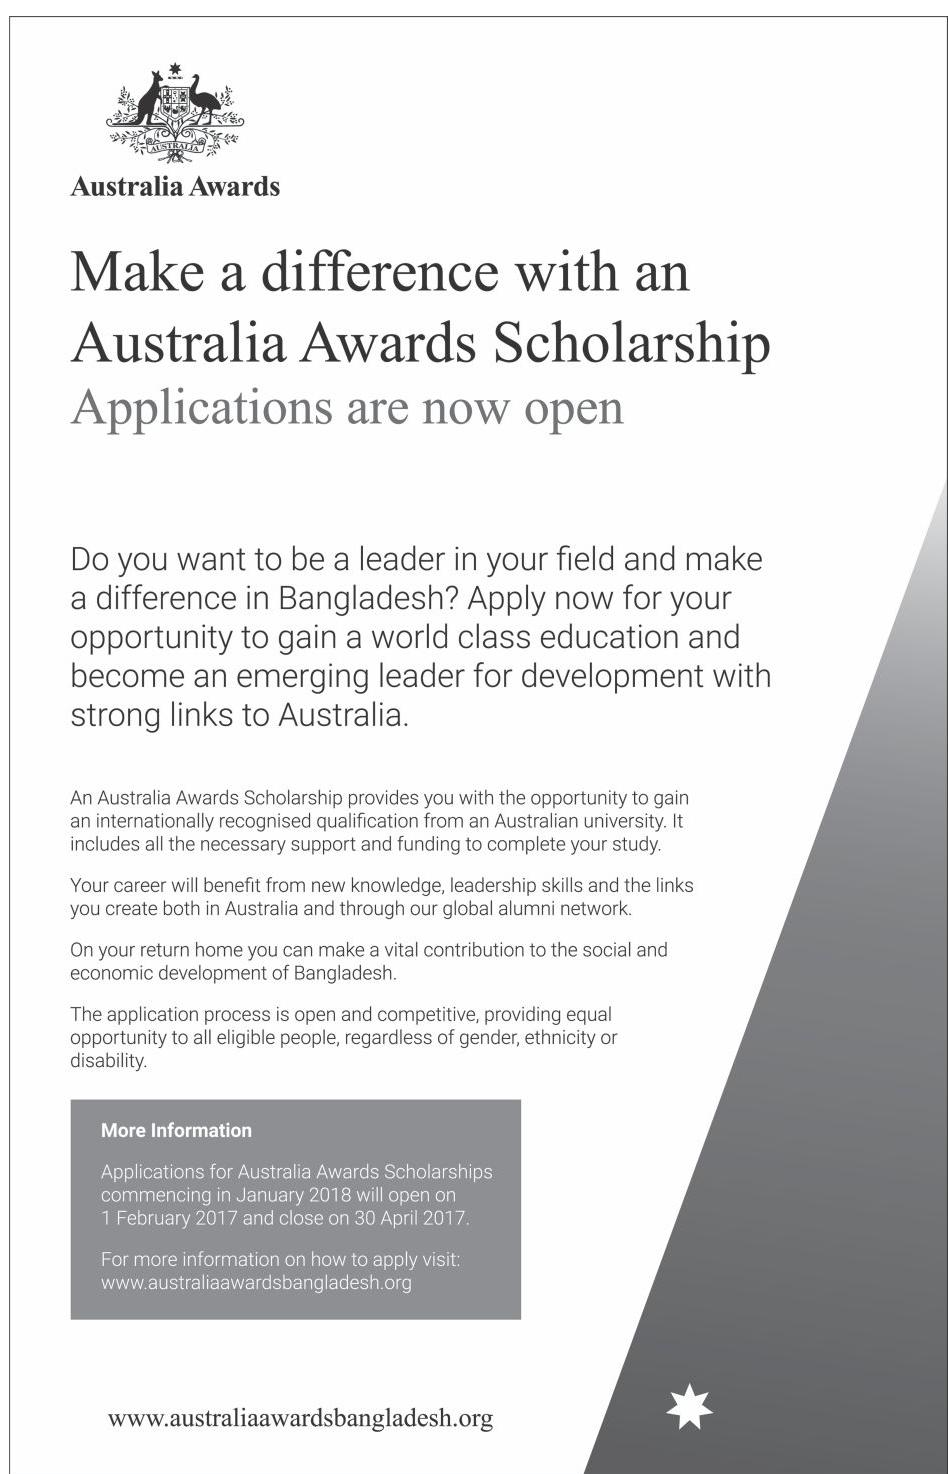 Application Form For Australian Awards Scholarship on scholarship deadlines, scholarship notification, transcript request form, scholarship information, scholarship checklist, financial aid form, scholarship icon, scholarship essay on leadership, scholarship statement of purpose, scholarship logo, scholarship app, scholarship opportunities, scholarship requirements, scholarship banner, scholarship program flyer, scholarship money, scholarship essay examples, eligibility form, scholarship quotes, scholarship clip art,